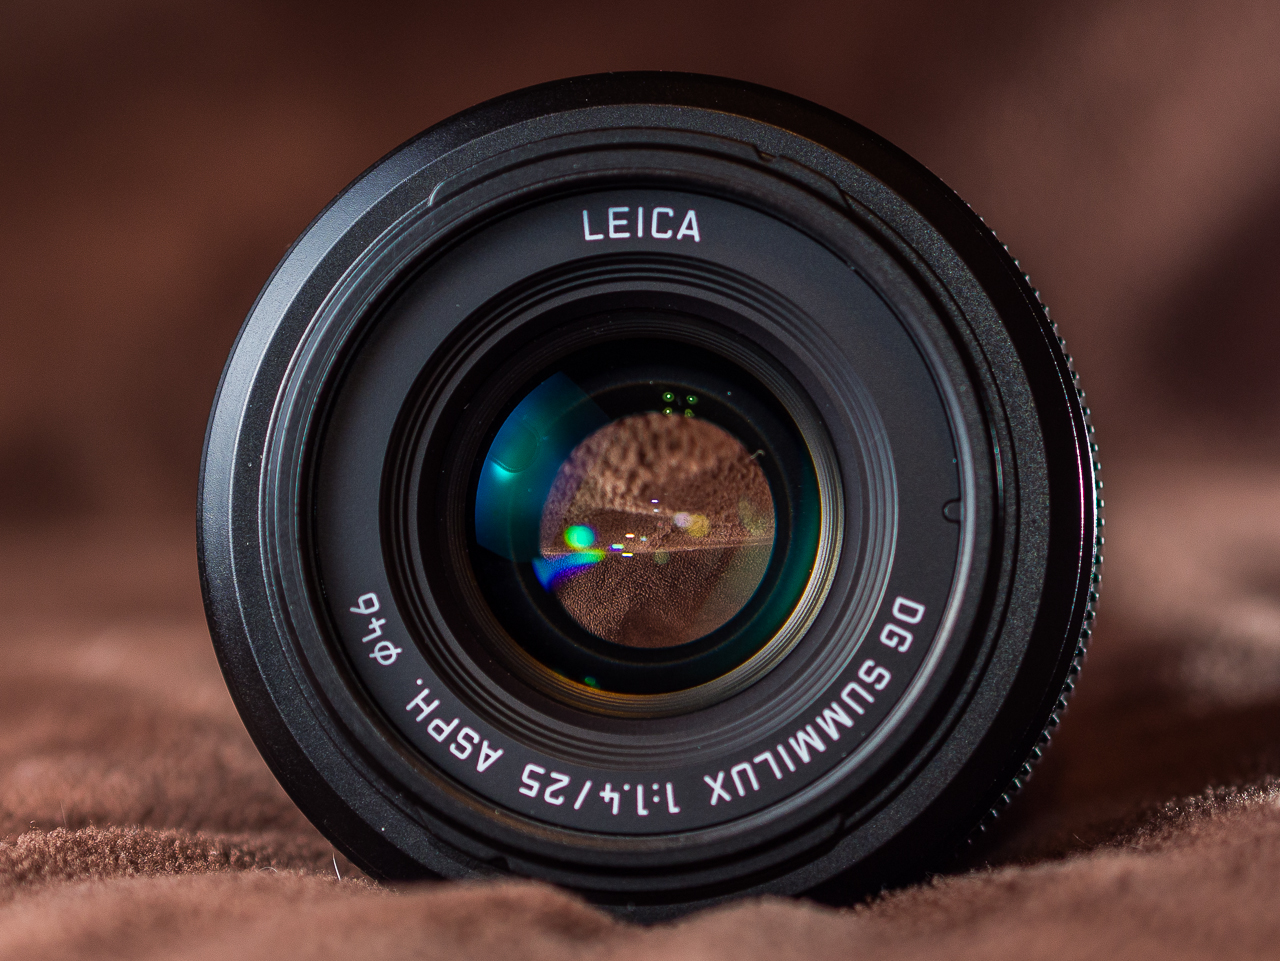 Panasonic Leica 25mm F 14 Dg Summilux Review Jonathan Hrovath Asph Micro 4 3 Lens This Feels Most At Home On The Larger M4